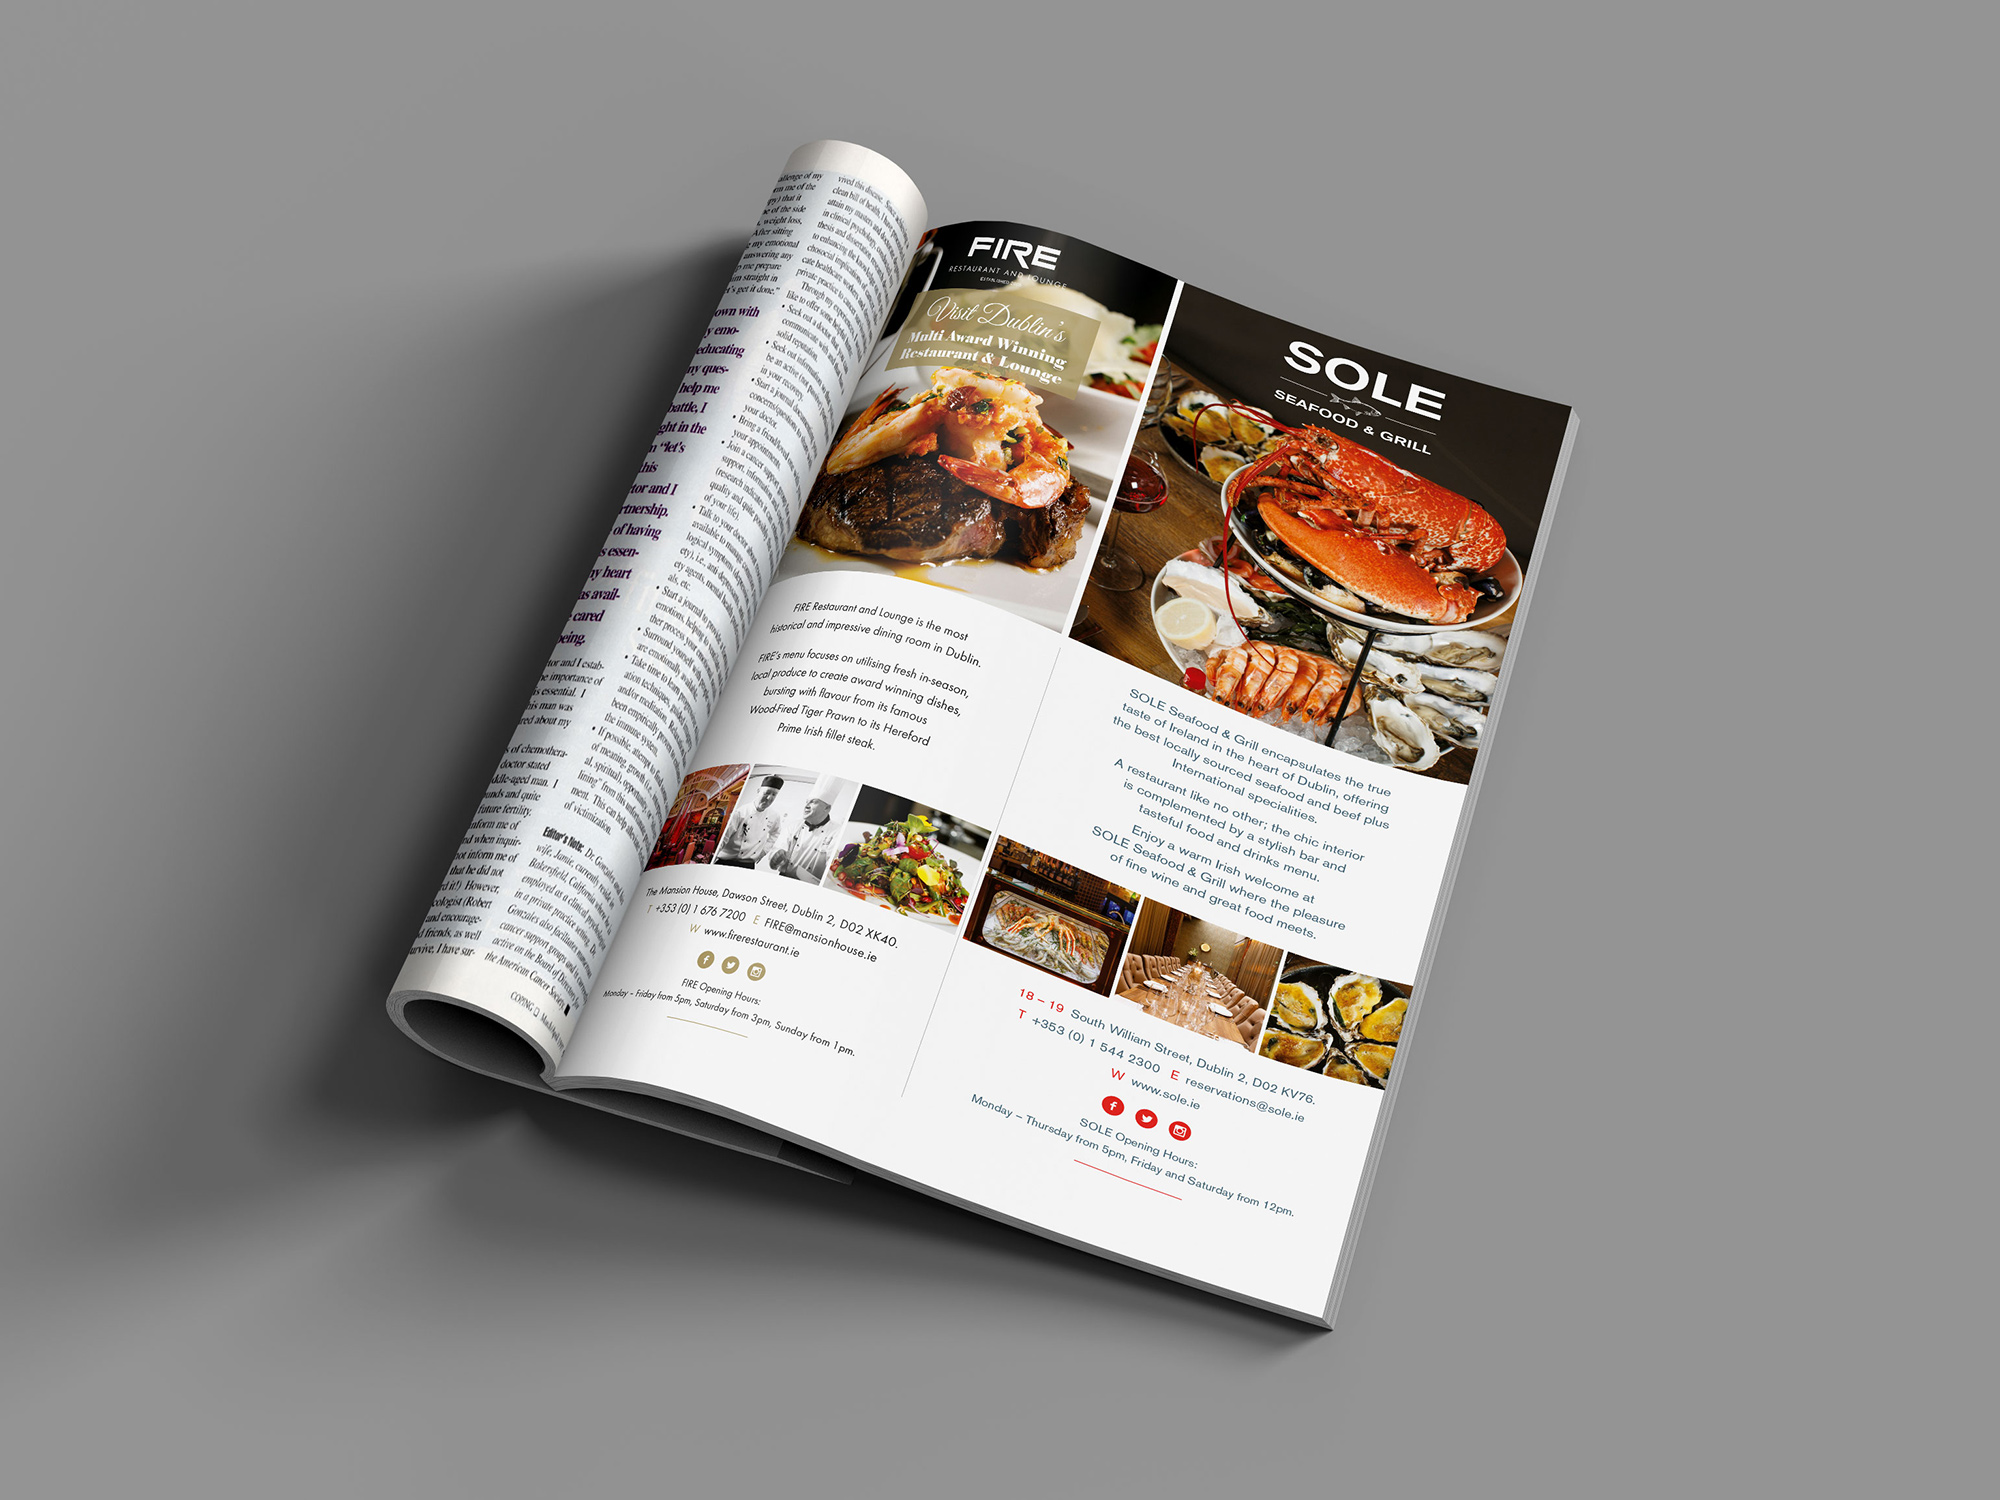 Sole-Fire-Magazine-Mockup-2000x1500.jpg